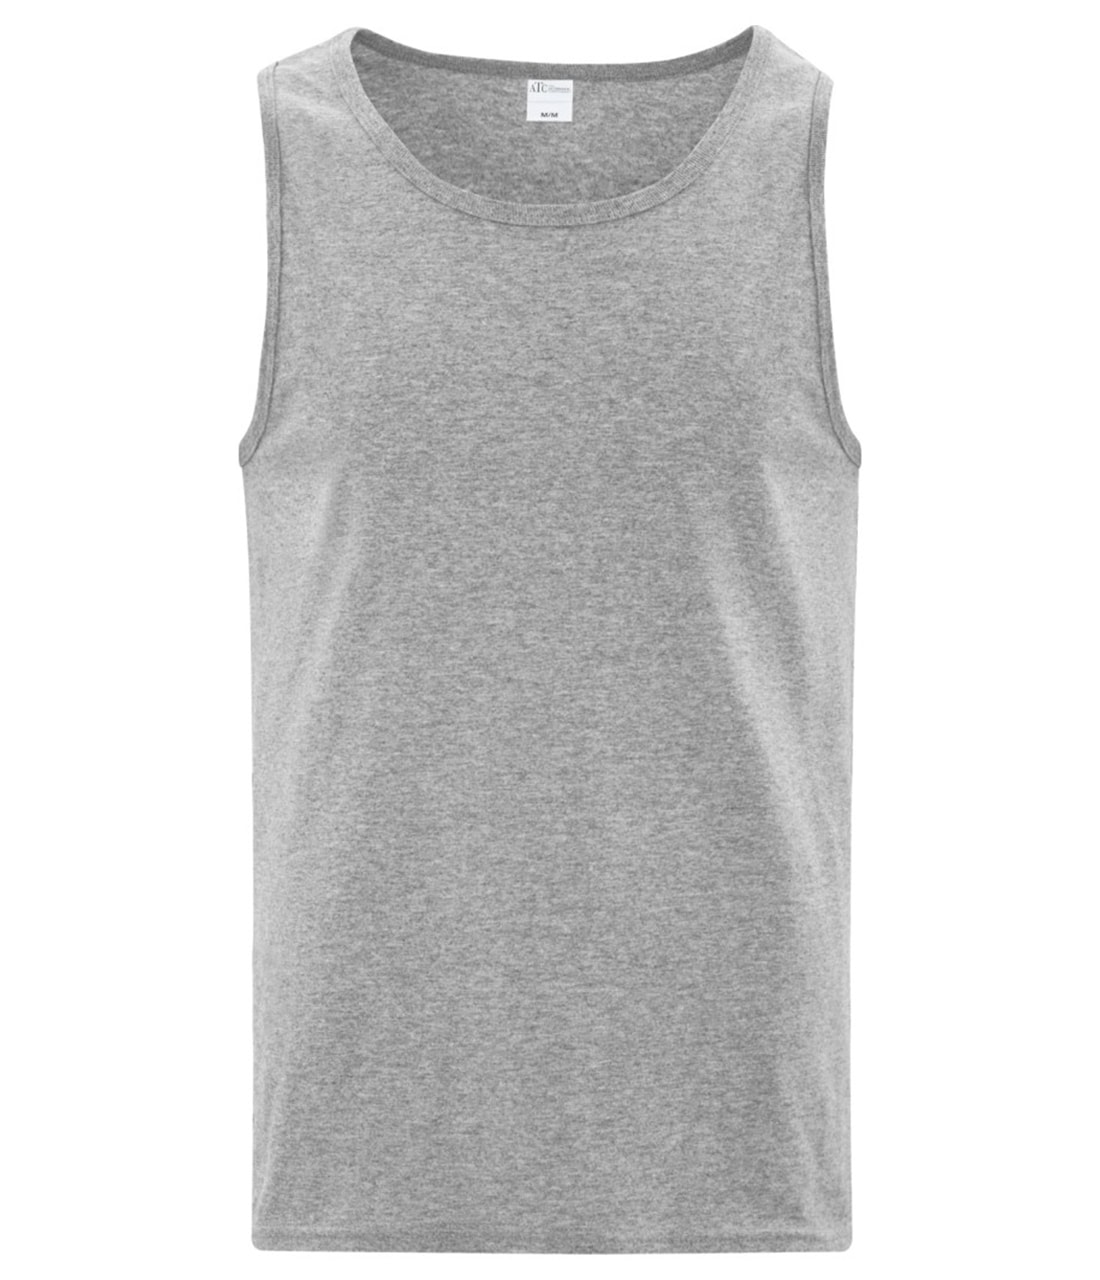 Picture of ATC Everyday Cotton Tank Top